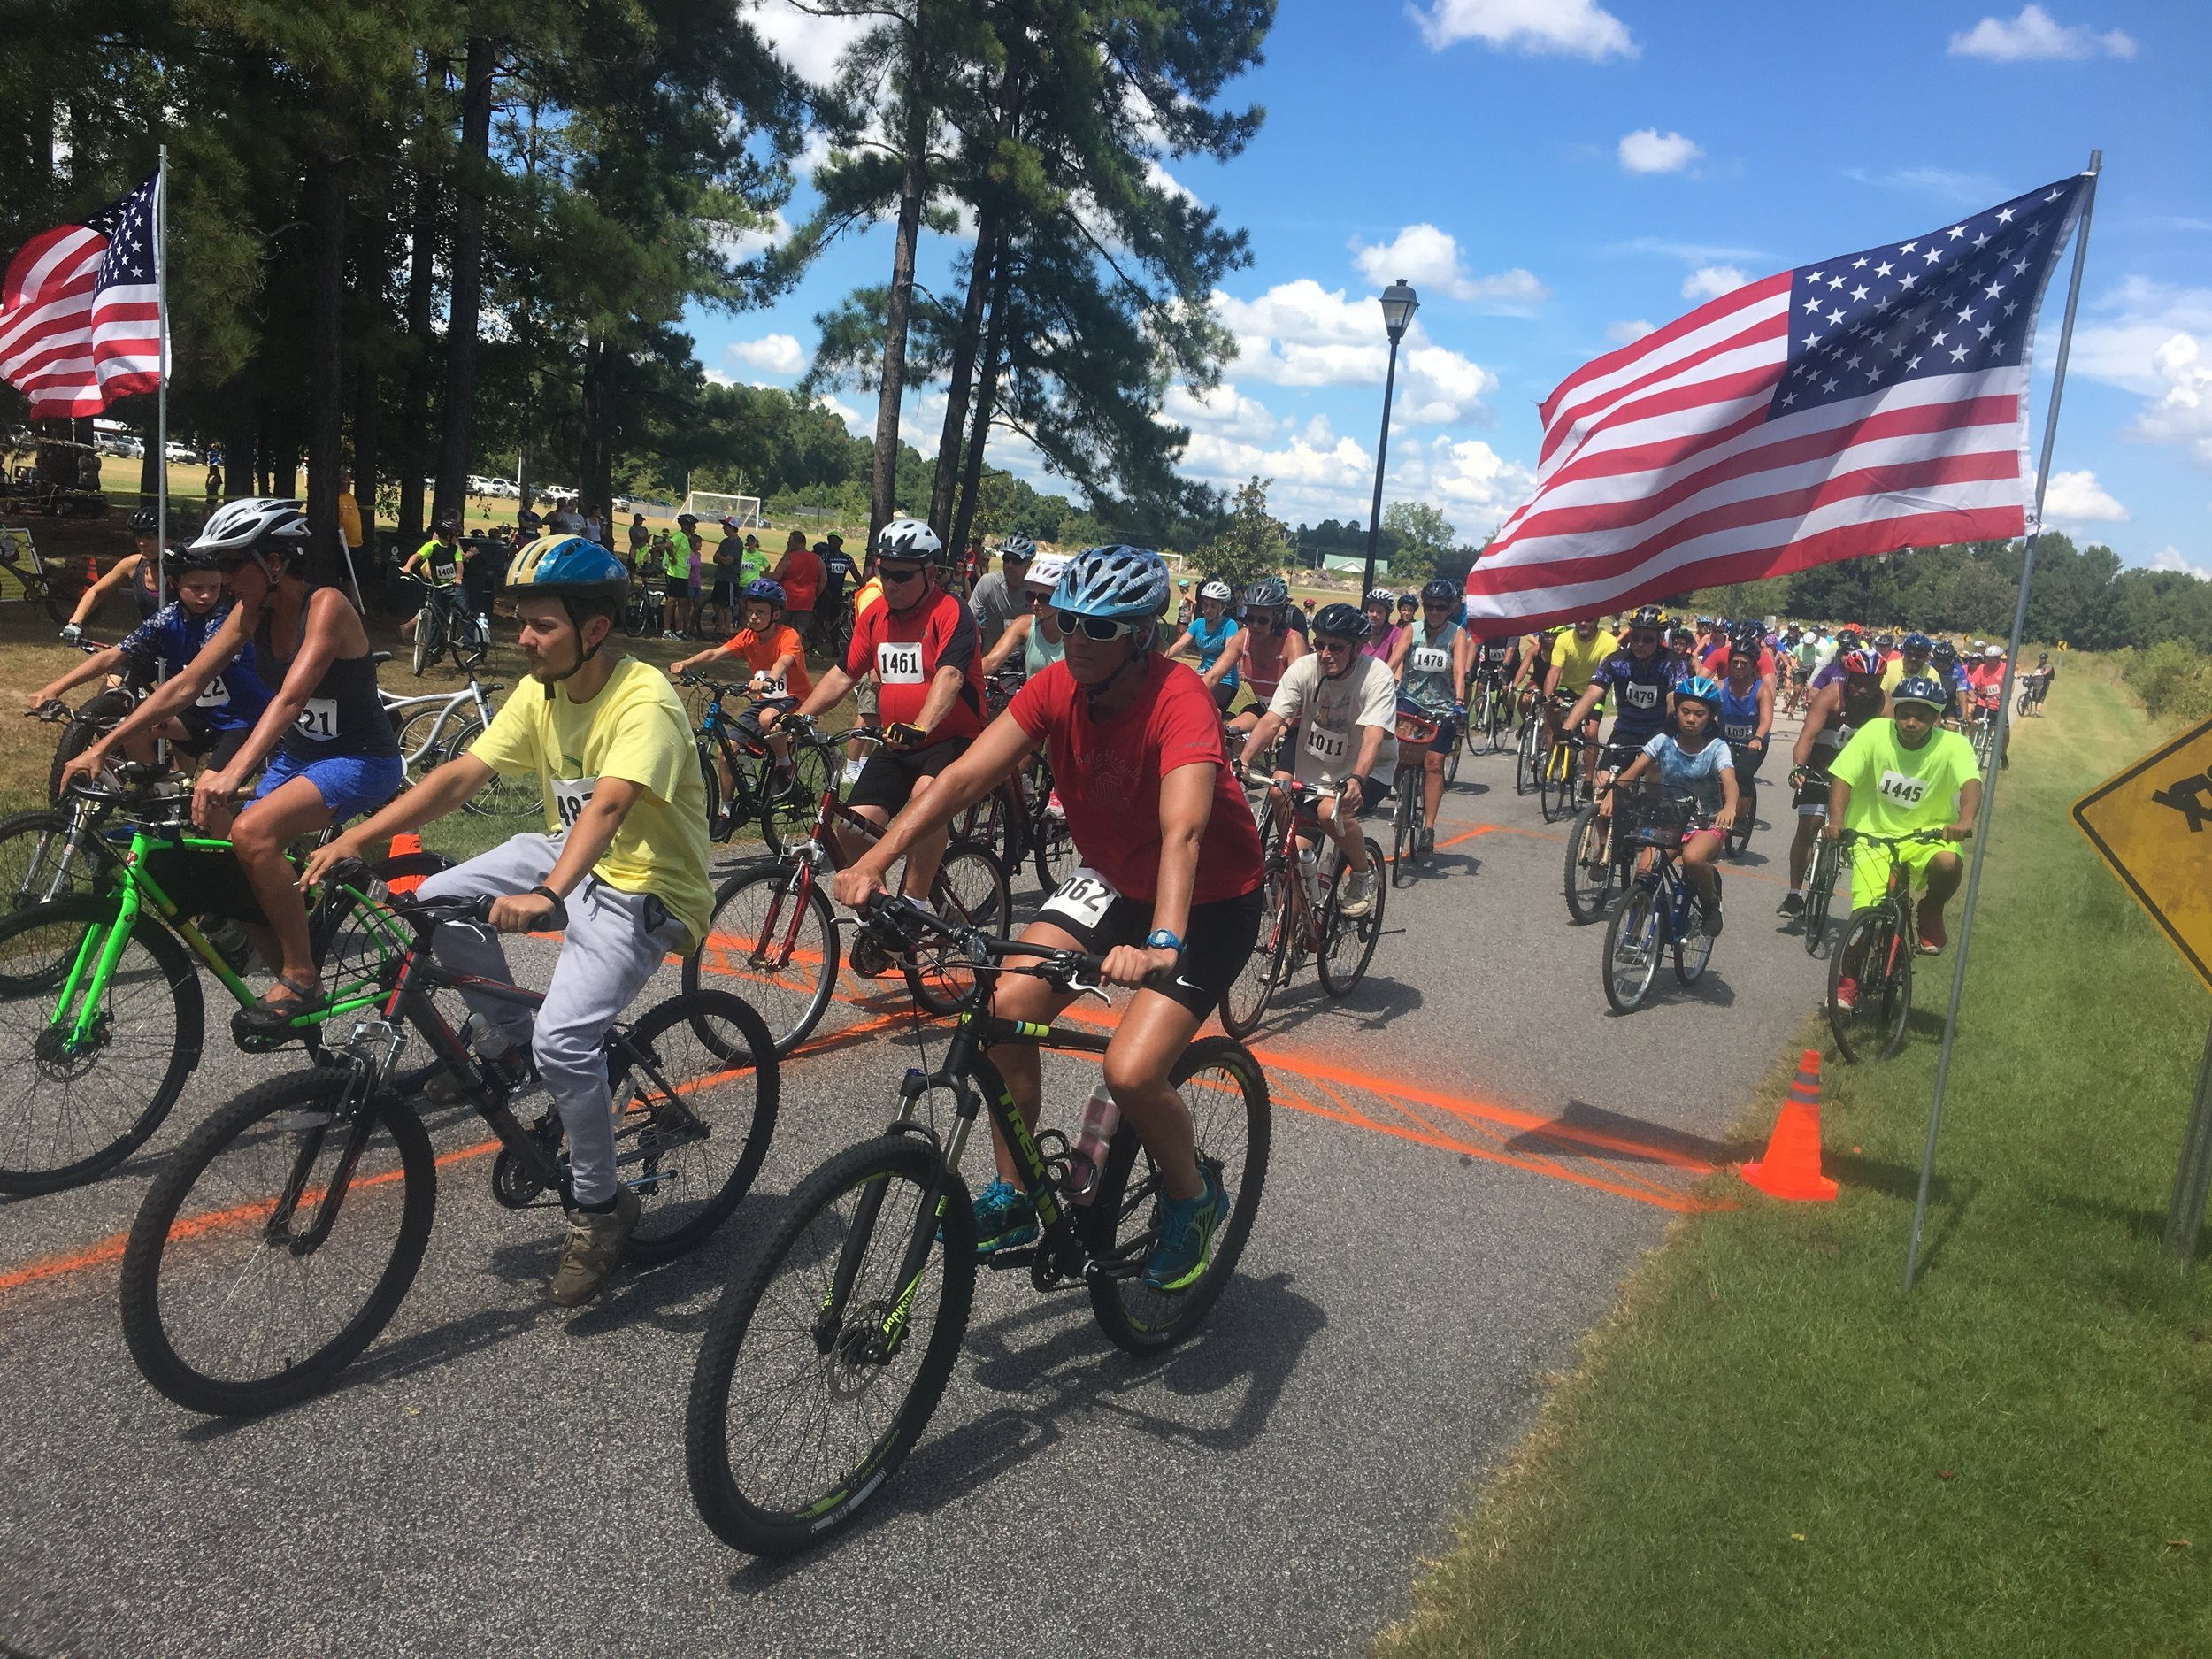 Bicycle events included the 16 mile personal endurance challenge around Lake Waccamaw and the 10K Family Bike.